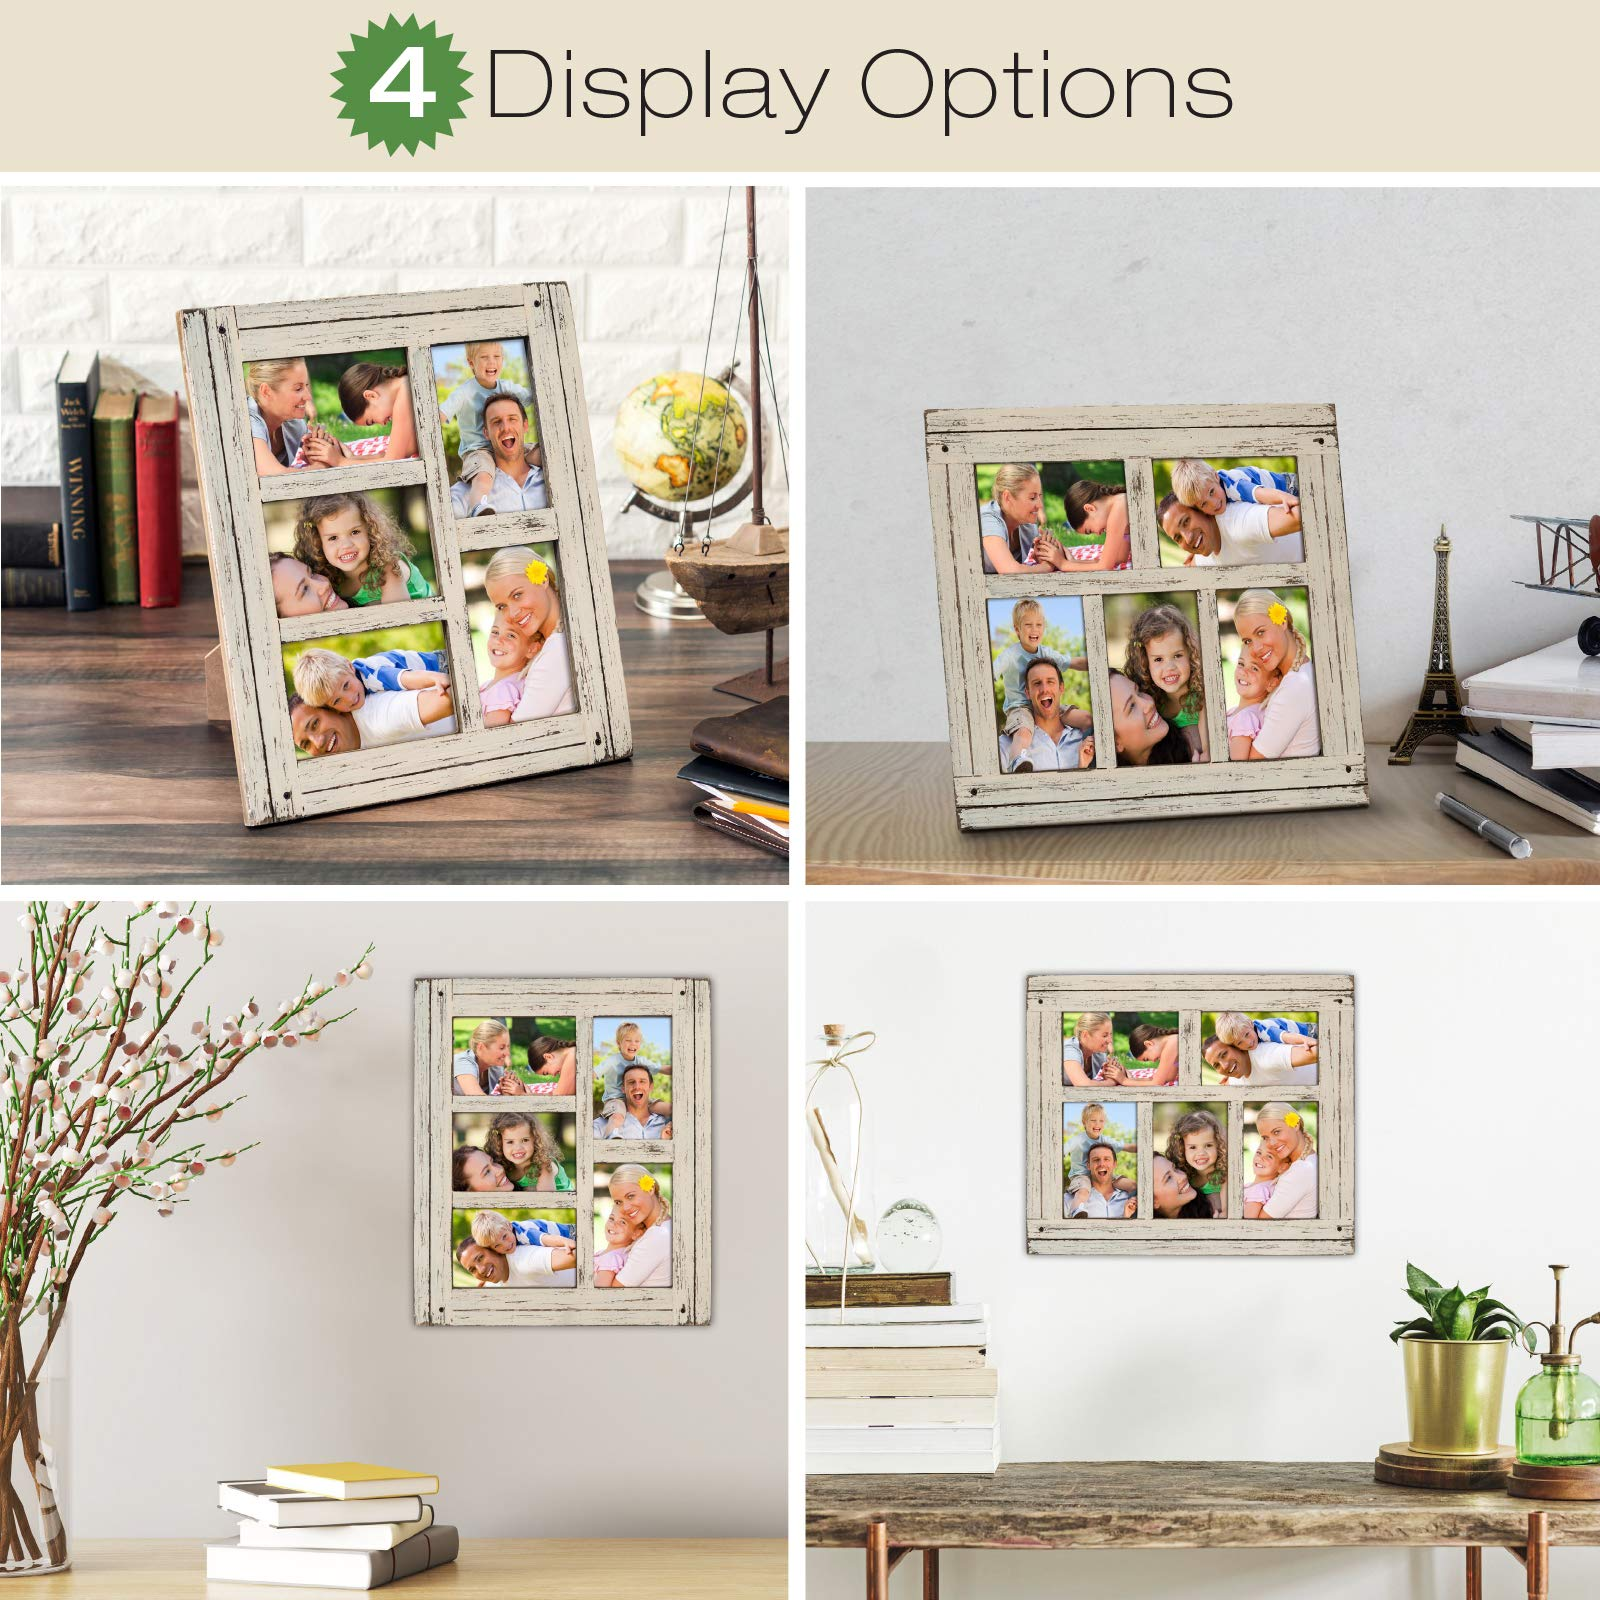 Collage Picture Frames from Rustic Distressed Wood: Holds Five 4x6 Photos: Ready to Hang or use Tabletop. Shabby Chic, Driftwood, Barnwood, Farmhouse, Reclaimed Wood Picture Frame Collage (White) by Excello Global Products (Image #5)